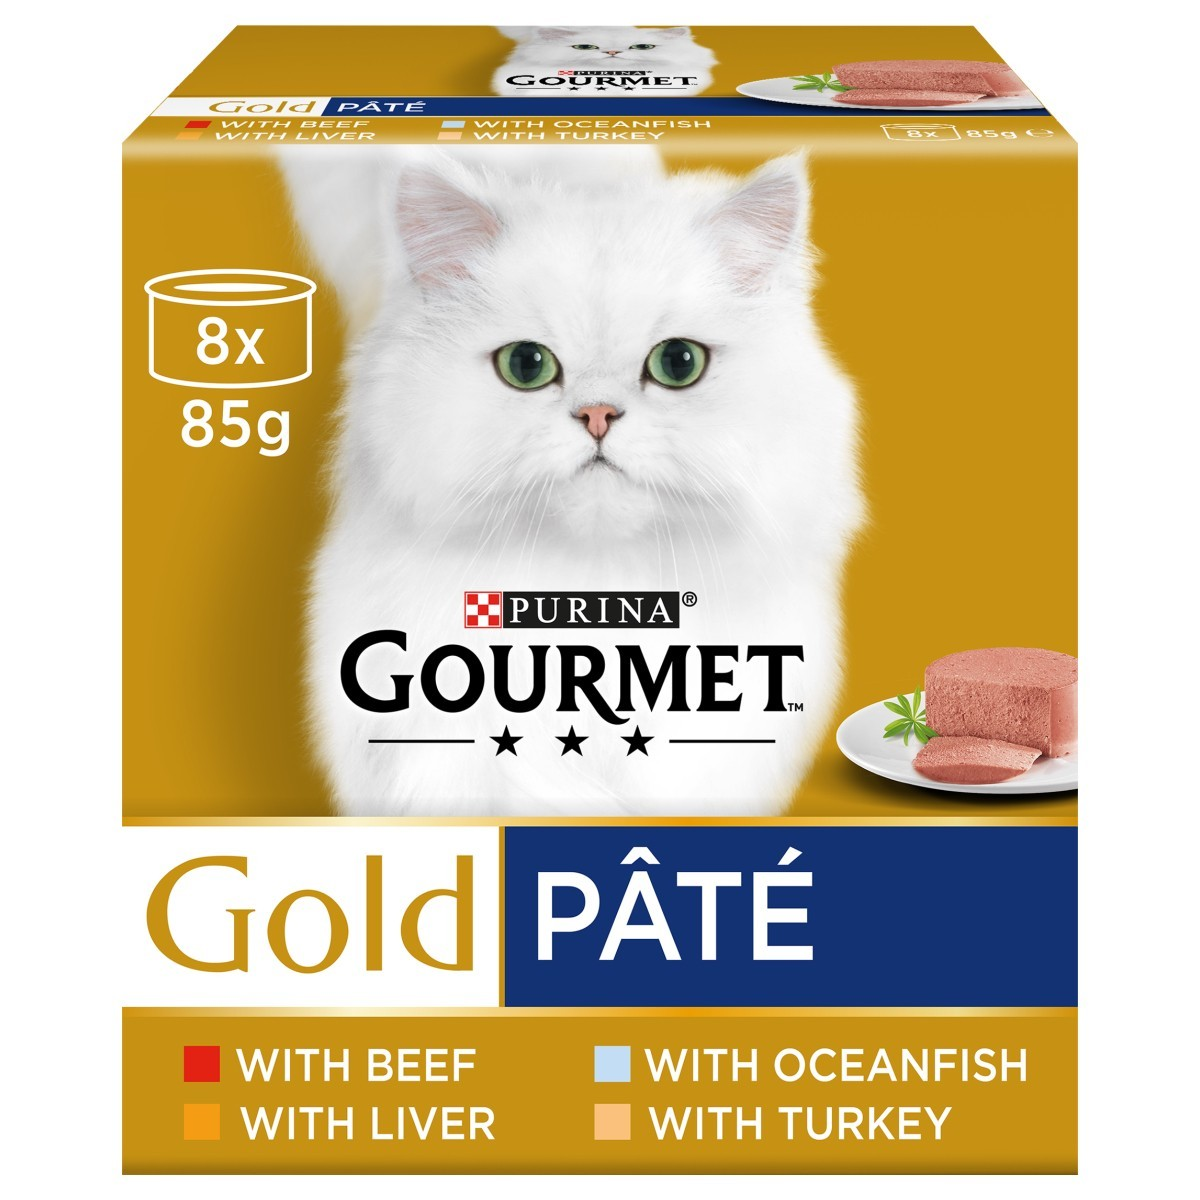 Purina Gourmet Gold Pate Wet Cat Food Tins Variety Pack From 3 01